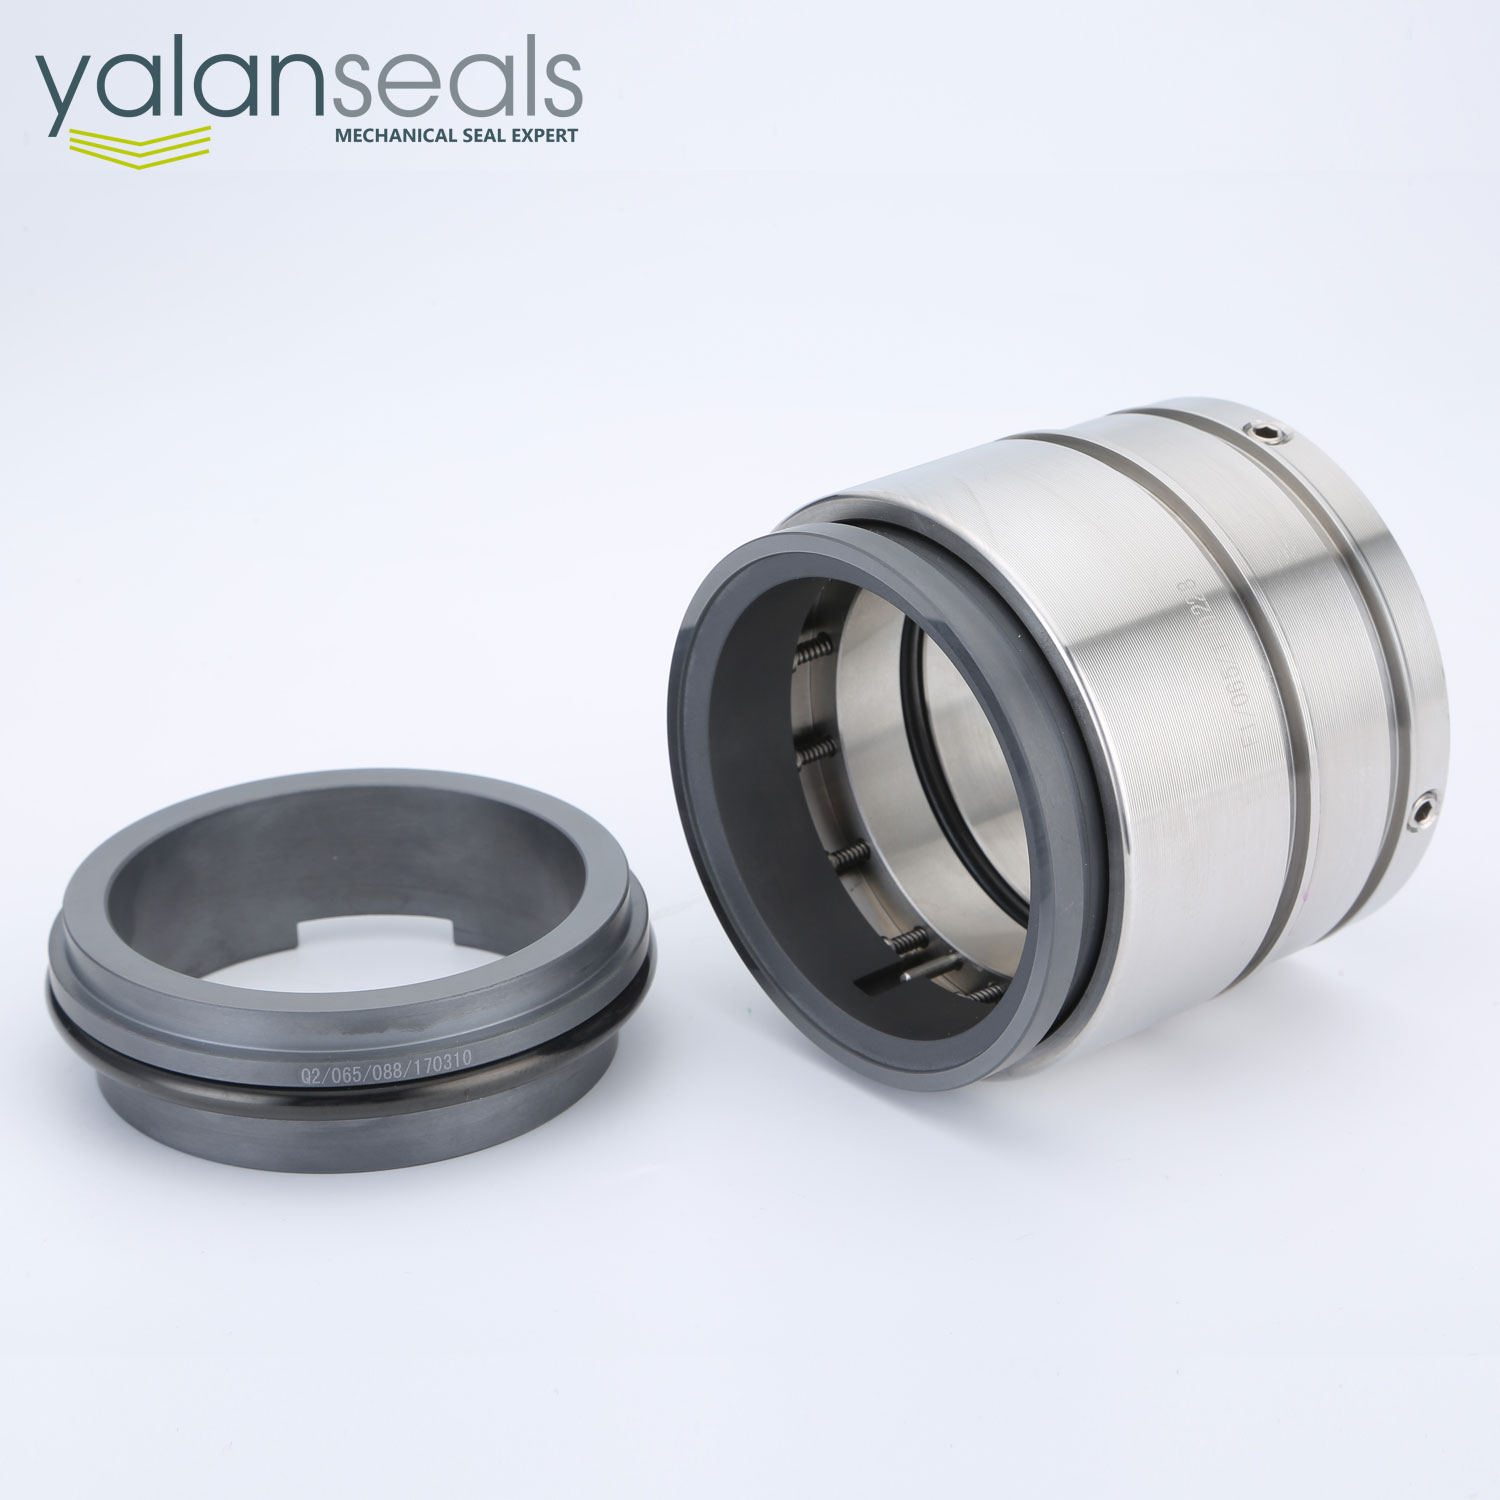 GR-SA Mechanical Seal for Grundfos Pumps